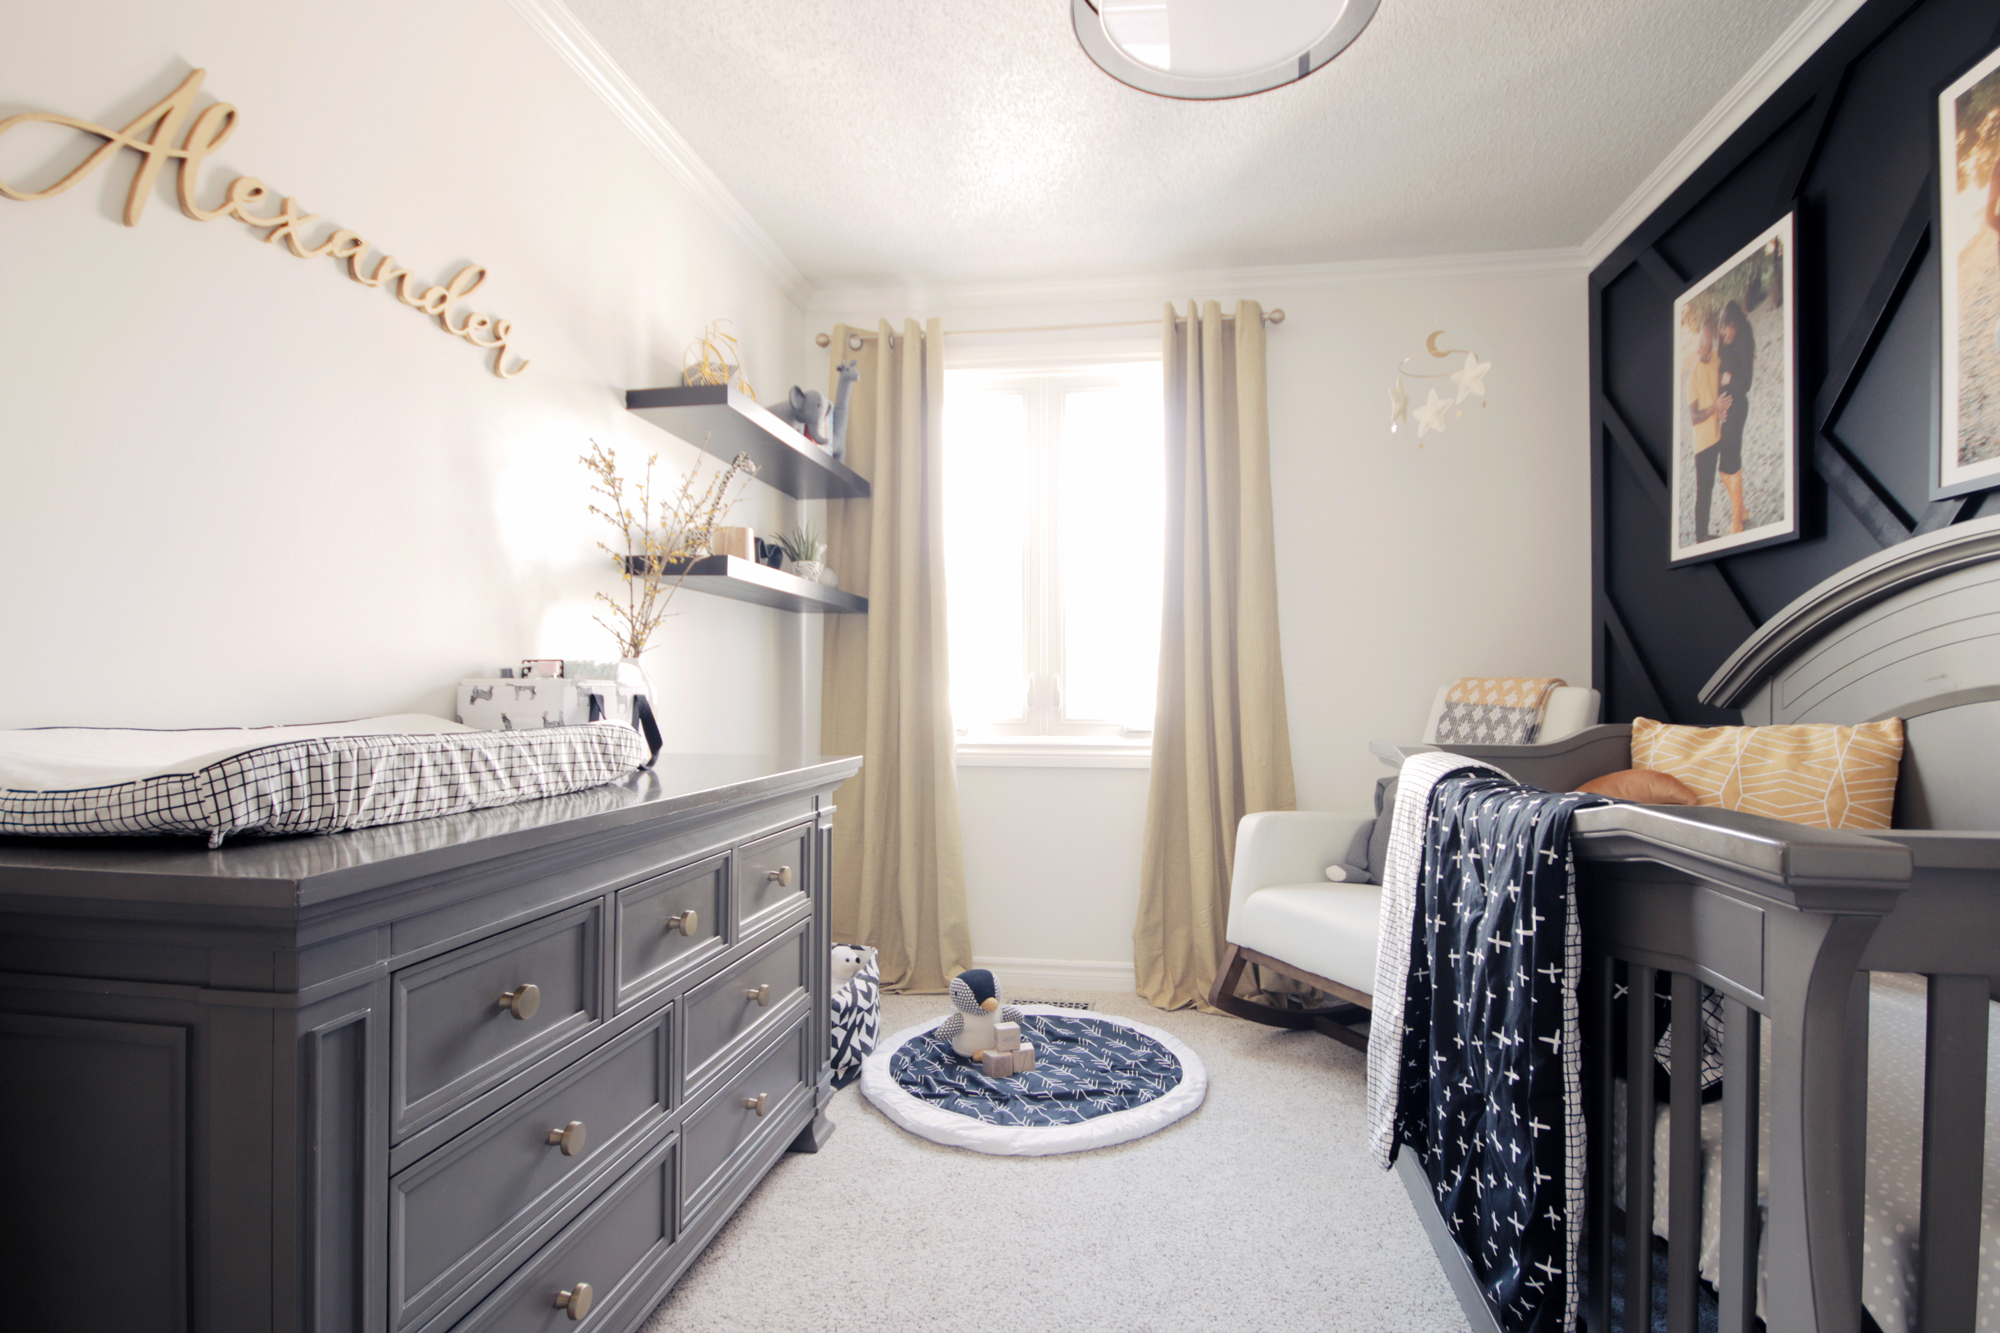 Contrasting light and dark walls in this warm elegant nursery reveal